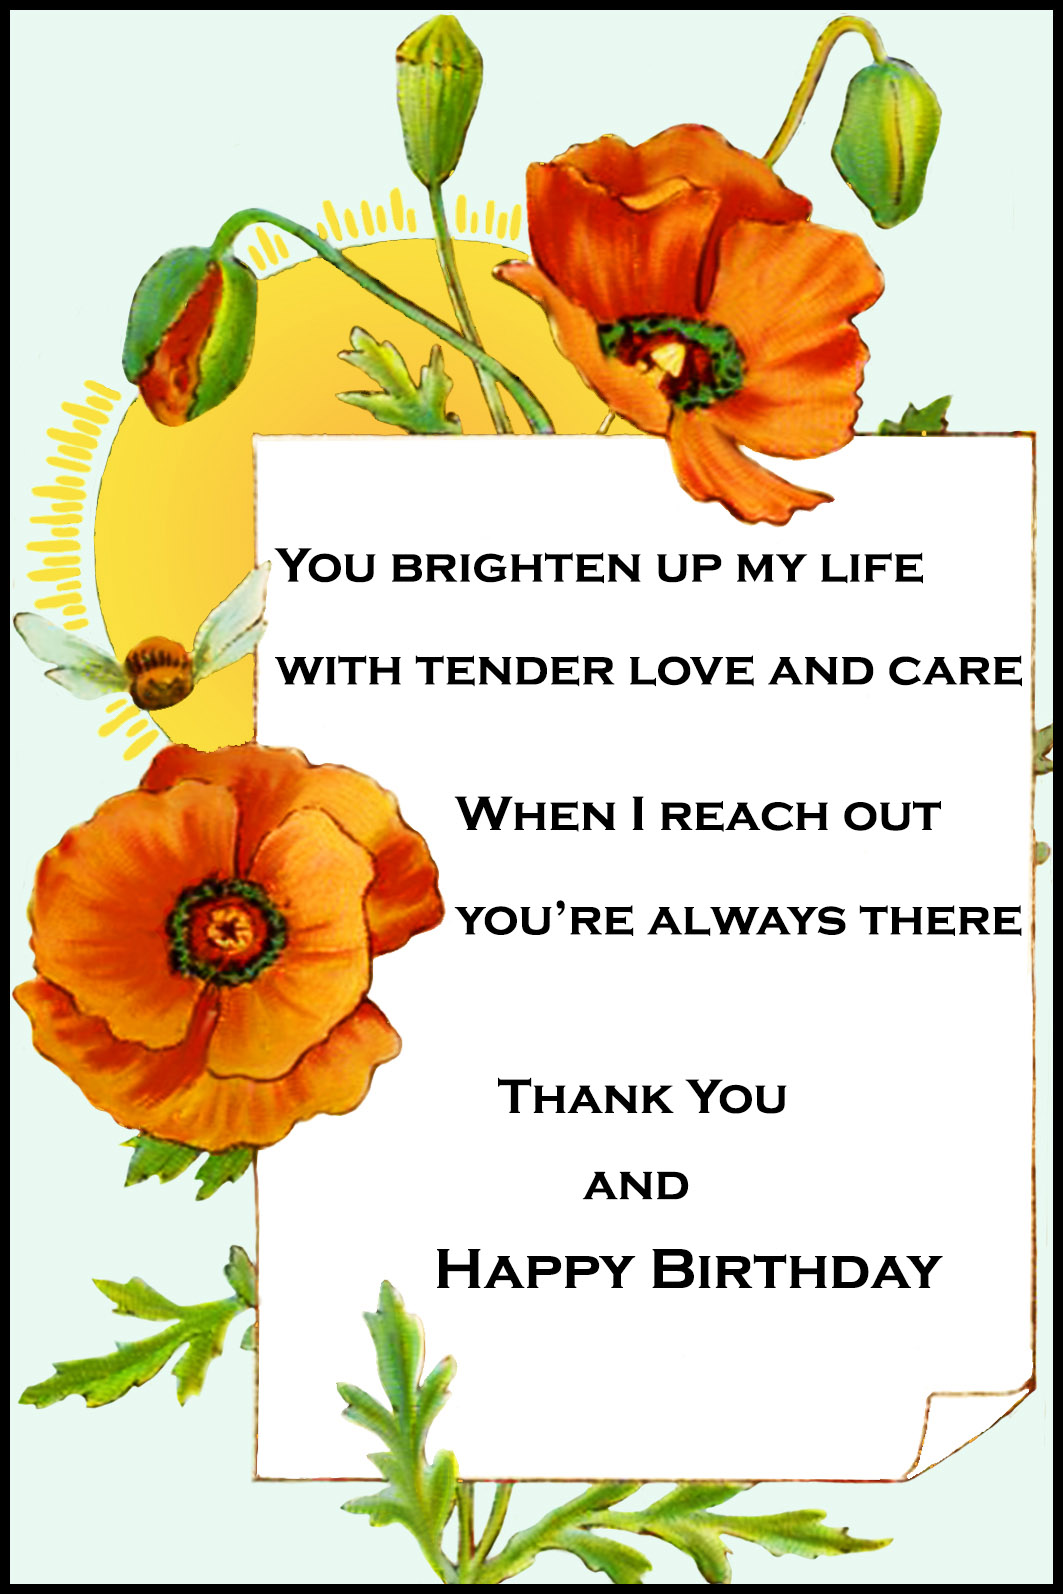 Happy Birthday Card for You – Free Textable Birthday Cards